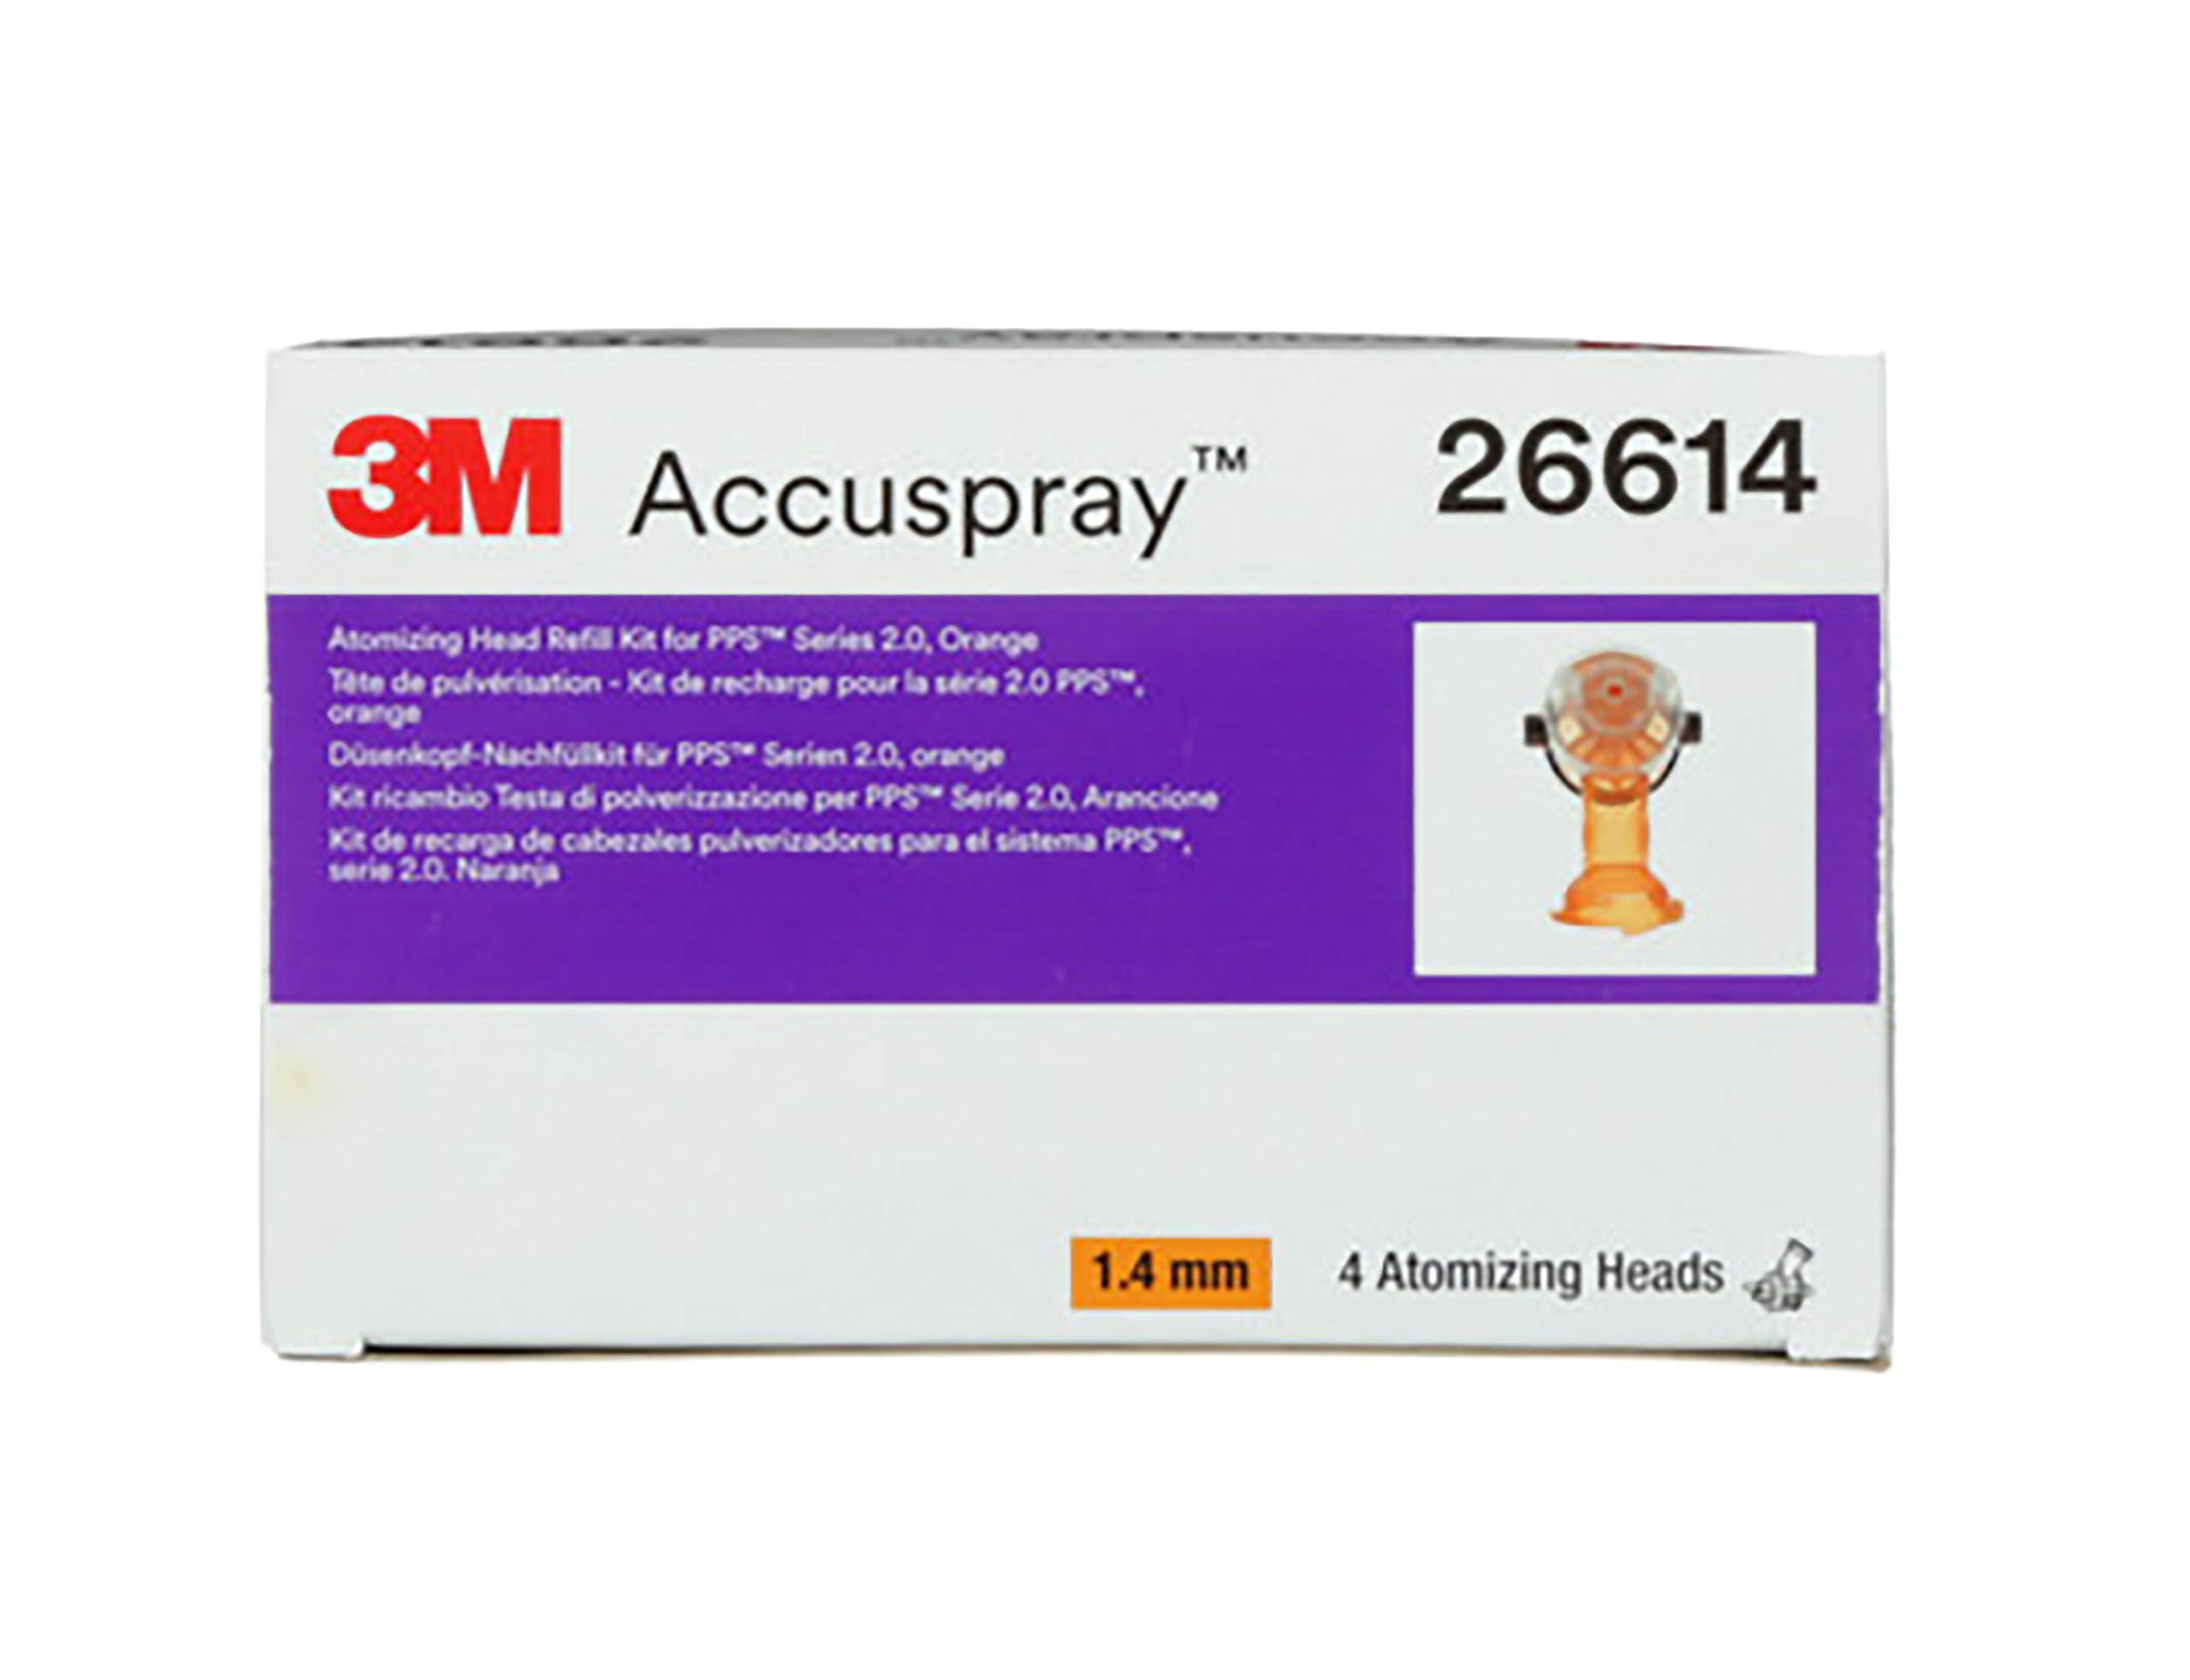 PPS 3M Series 2.0 and Accuspray ONE Atomizing Head Refill, 26614, 1.4mm, Orange, 4 Pack